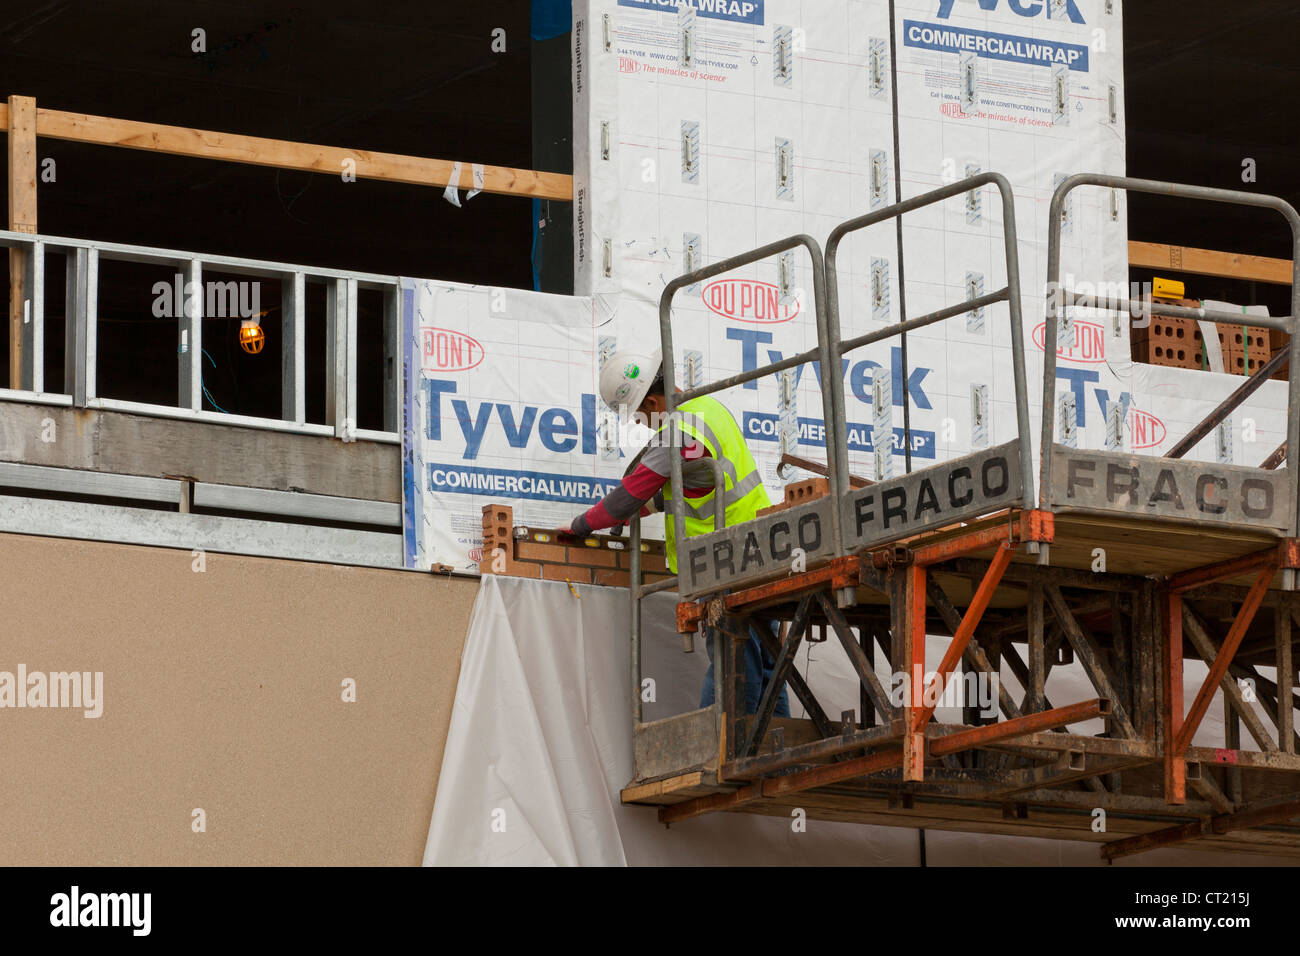 Construction worker on lift - Stock Image